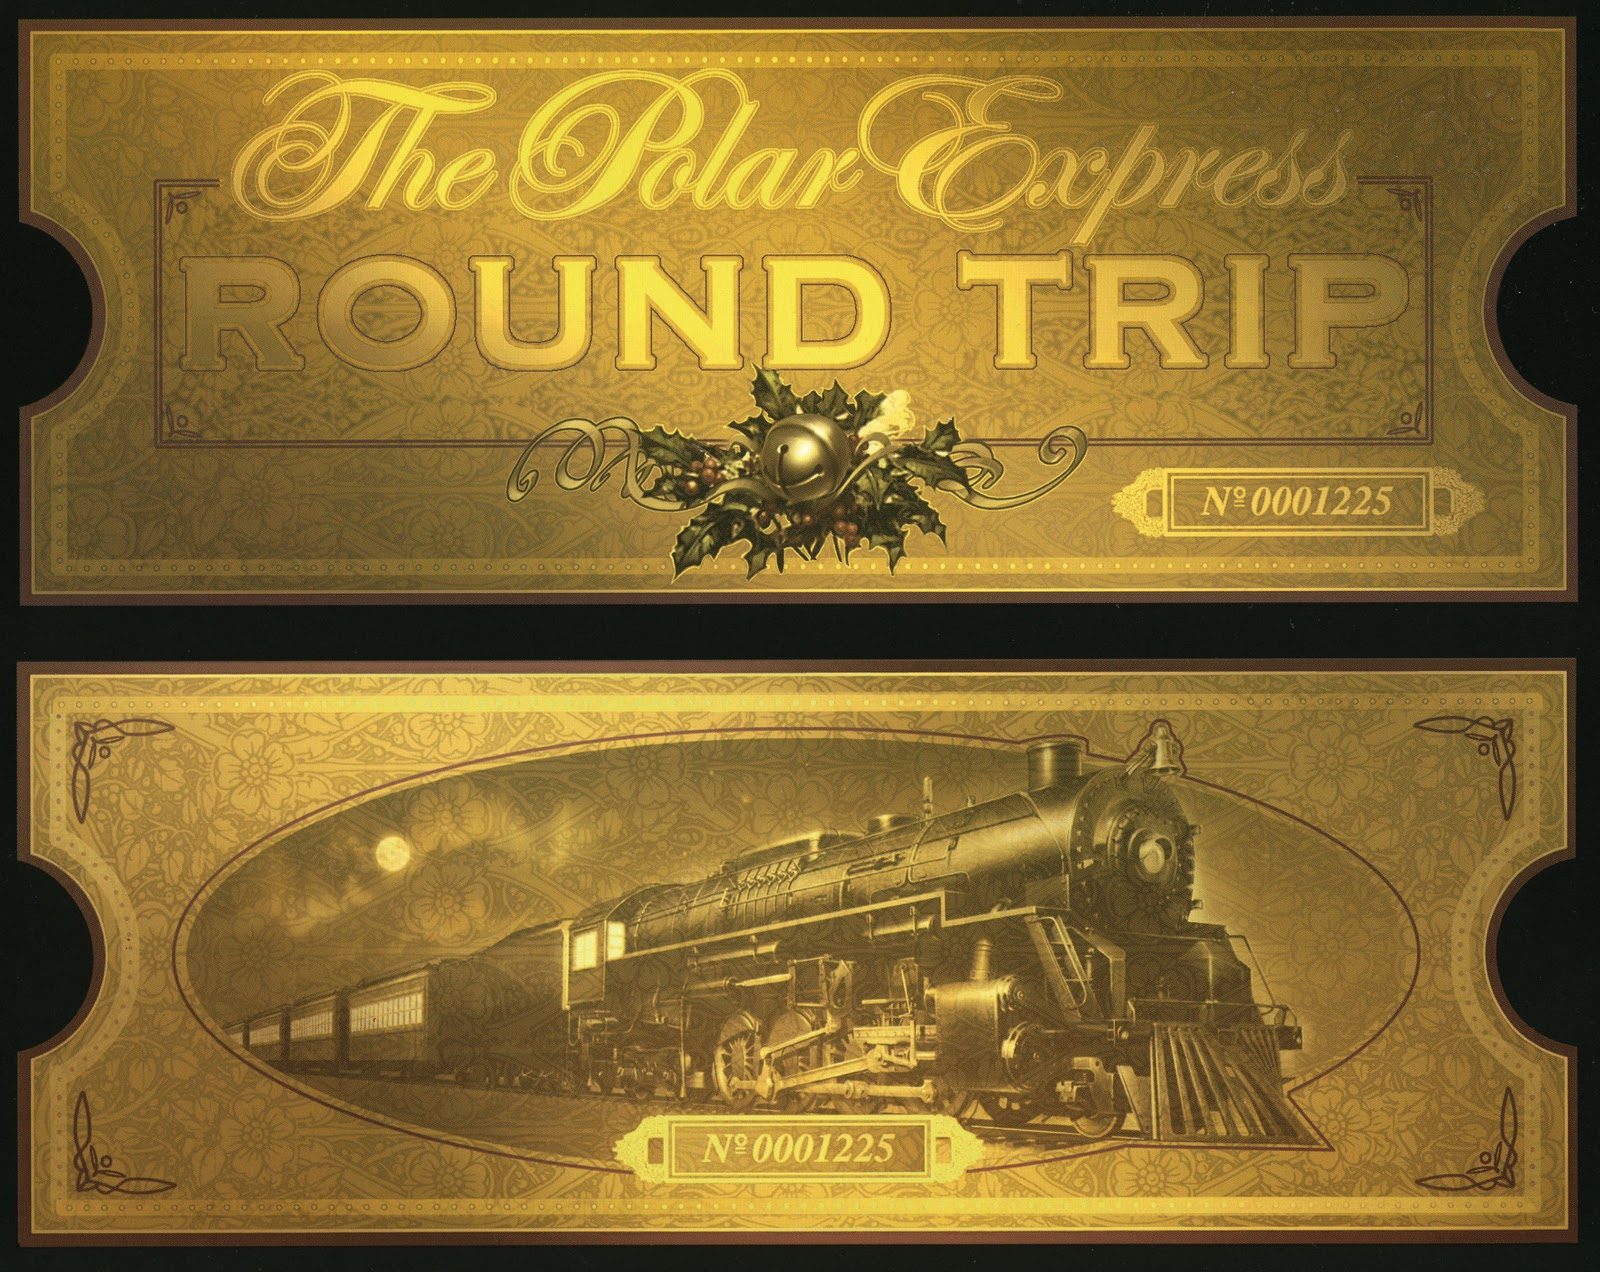 Polar Express Tickets Images Picture